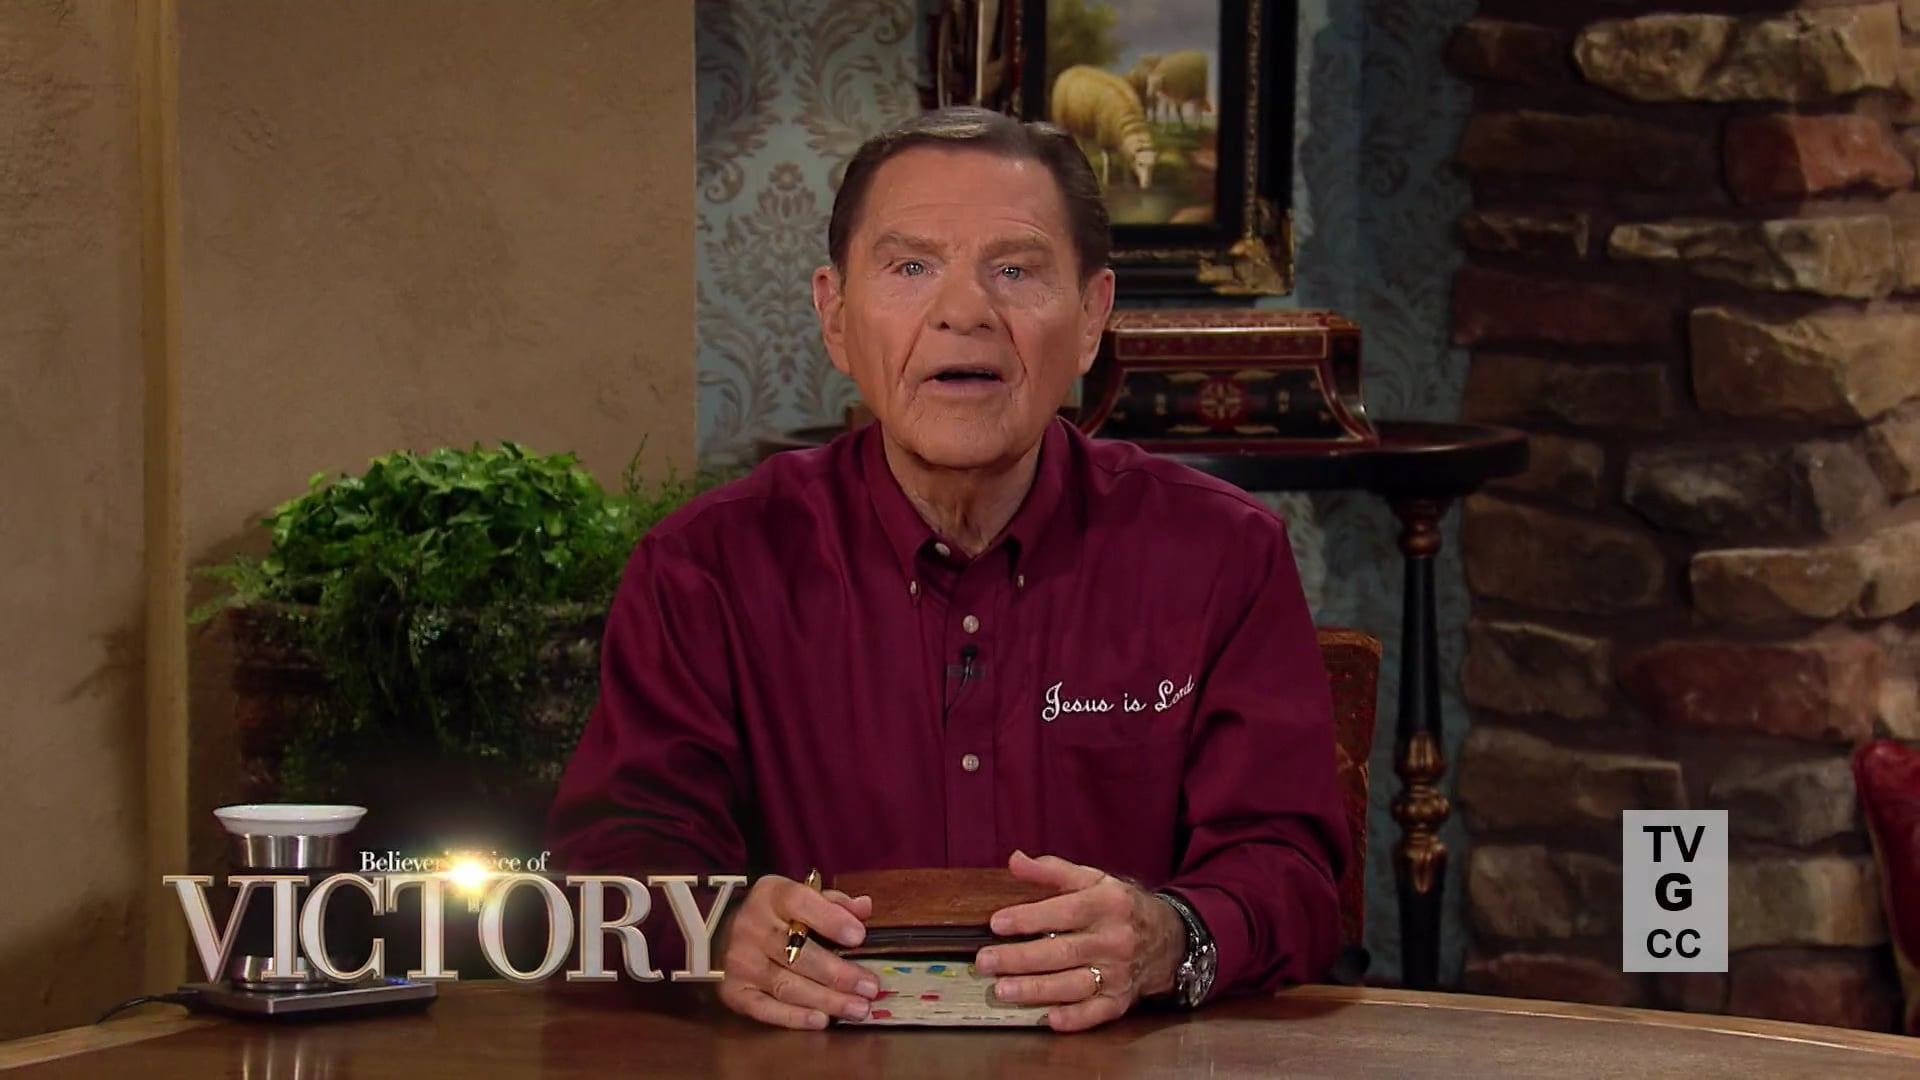 Your wait for healing is over! Watch Believer's Voice of Victory as Kenneth Copeland teaches you the only thing between you and total healing is believing it belongs to you. It's time to act on your faith because the healing glory is here—today and every day!